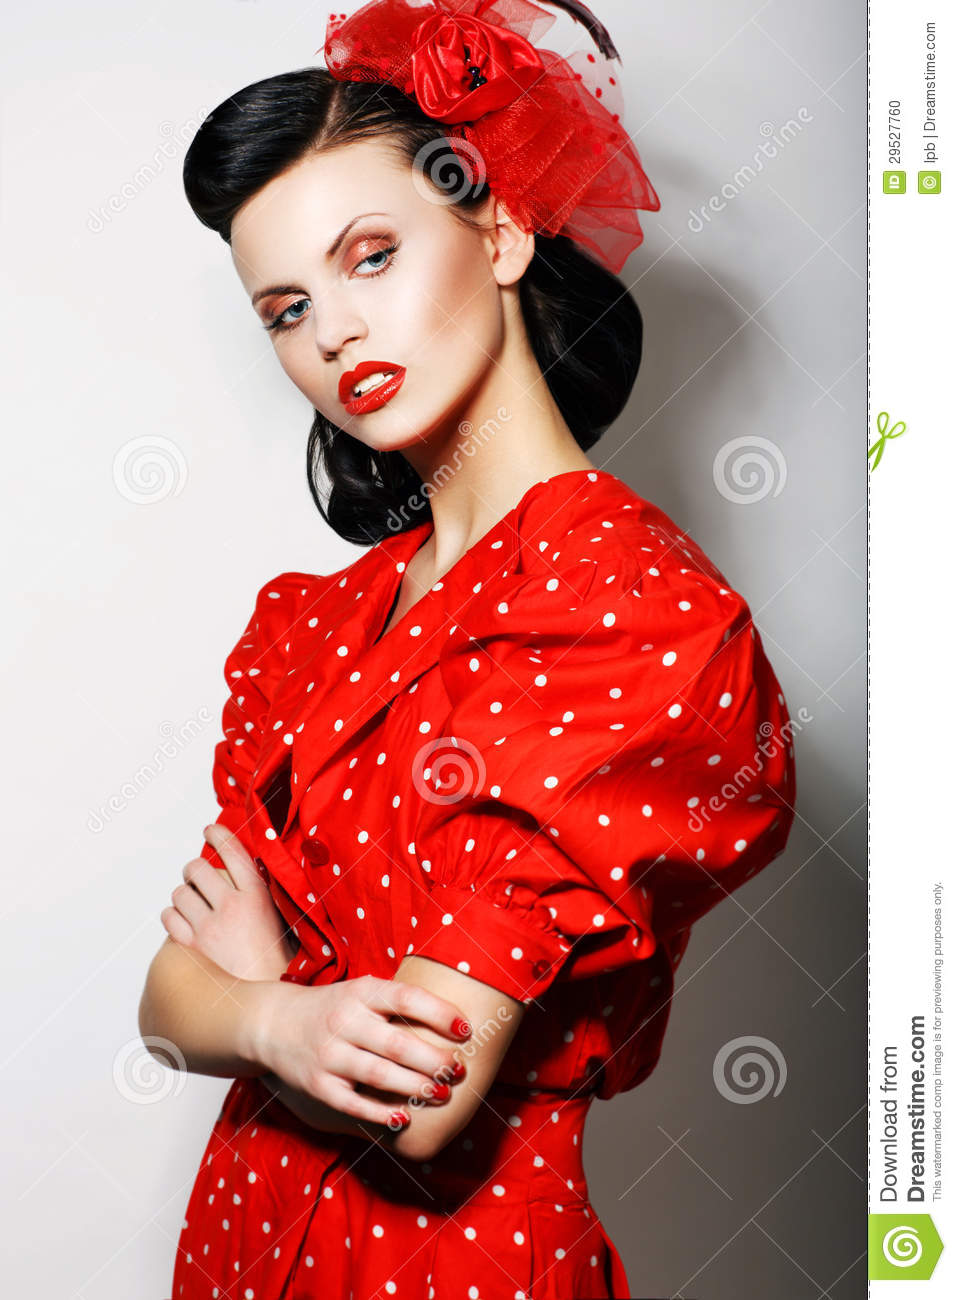 Red Retro Dress